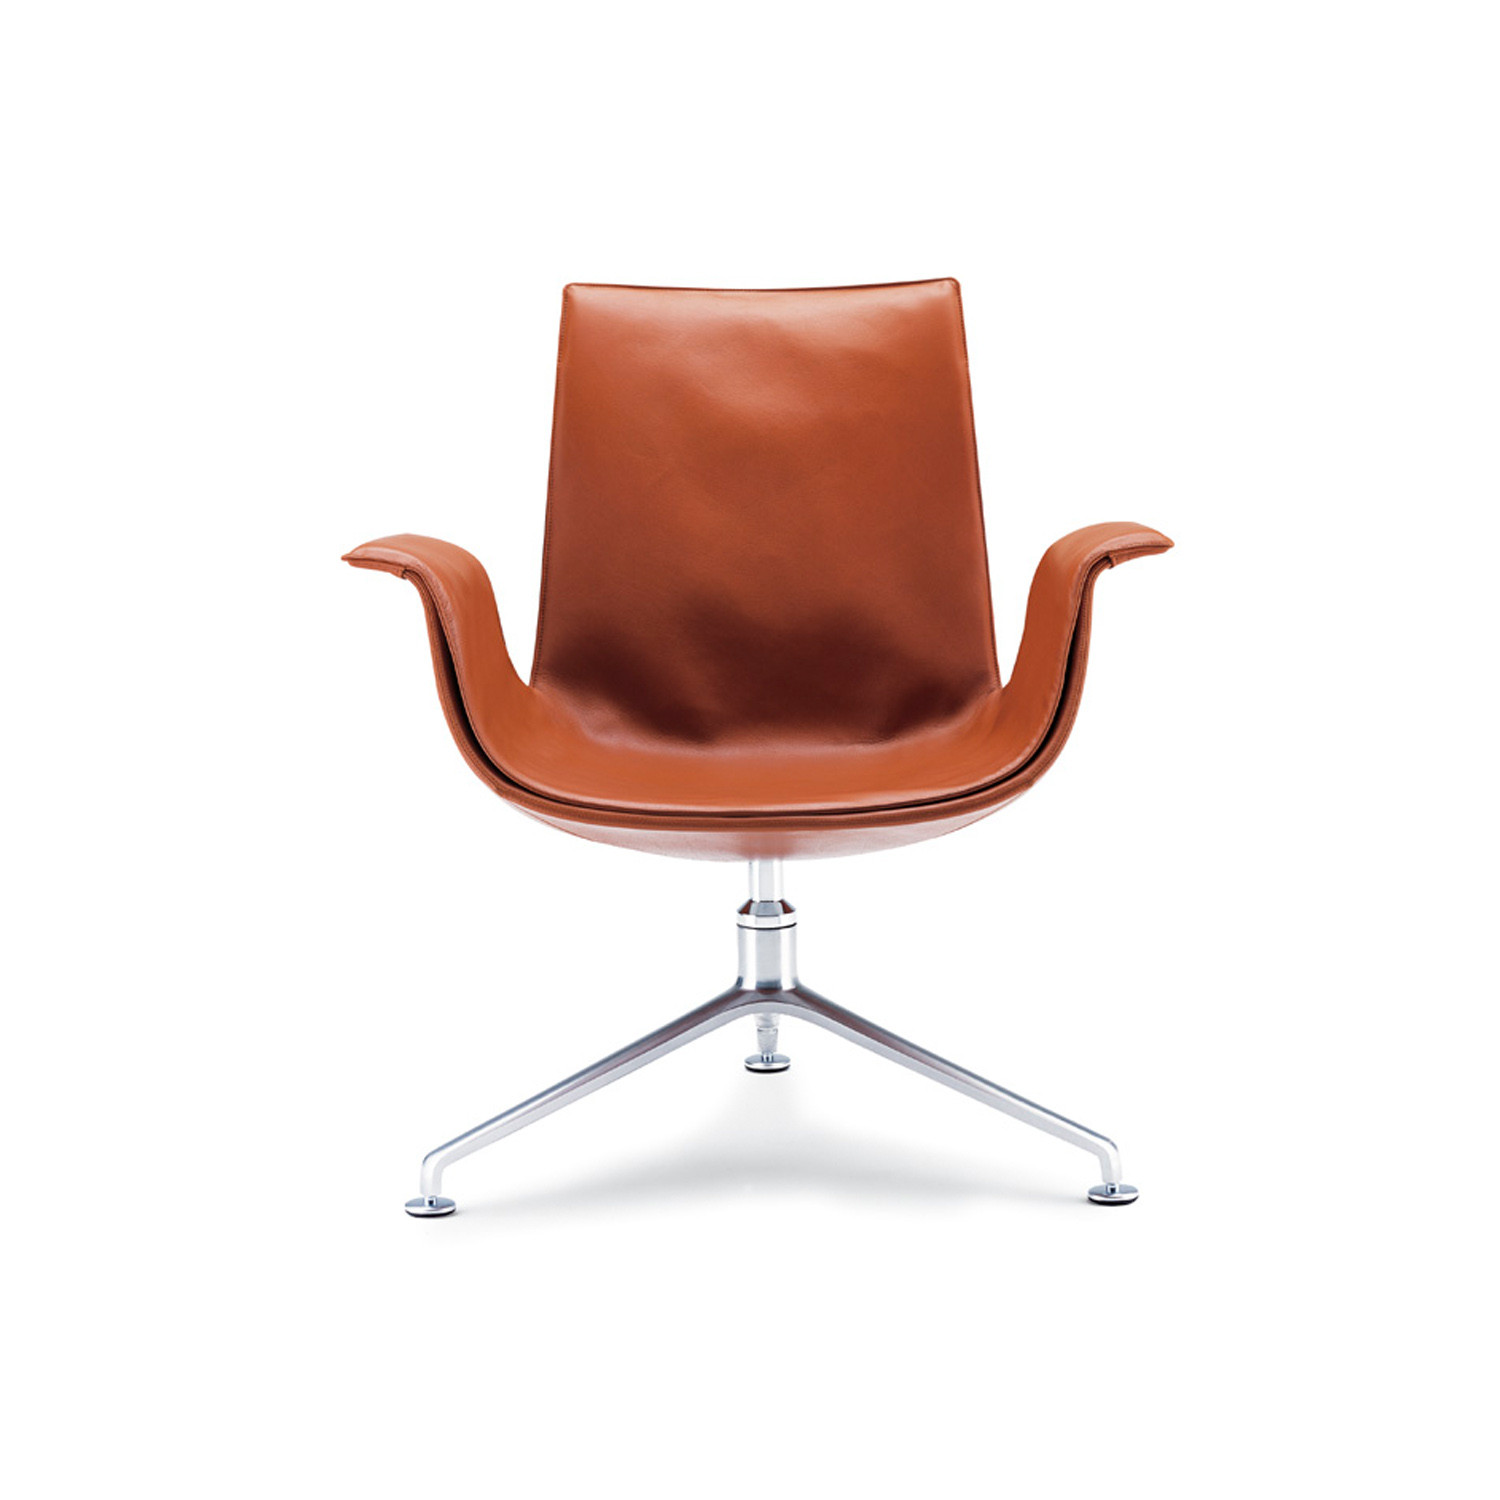 lounge chair for office. fk office lounge chair for t